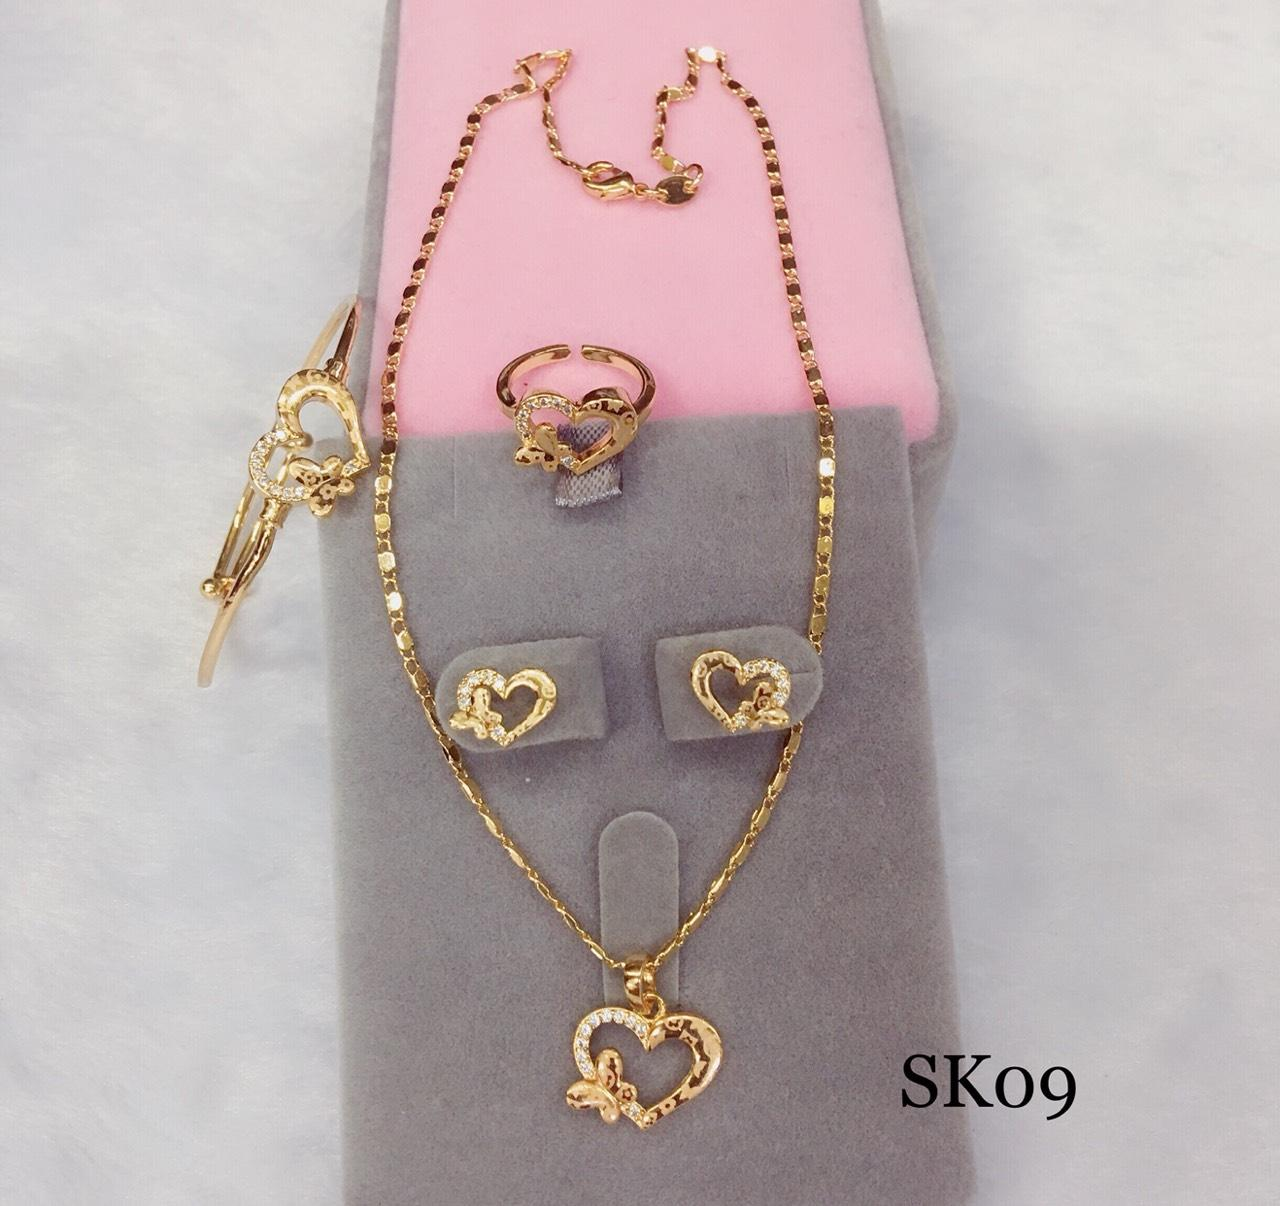 Sk09 High Quality 18k Rose Gold Stainless Steel 4 In 1 Set For Kids By Miss M Shop